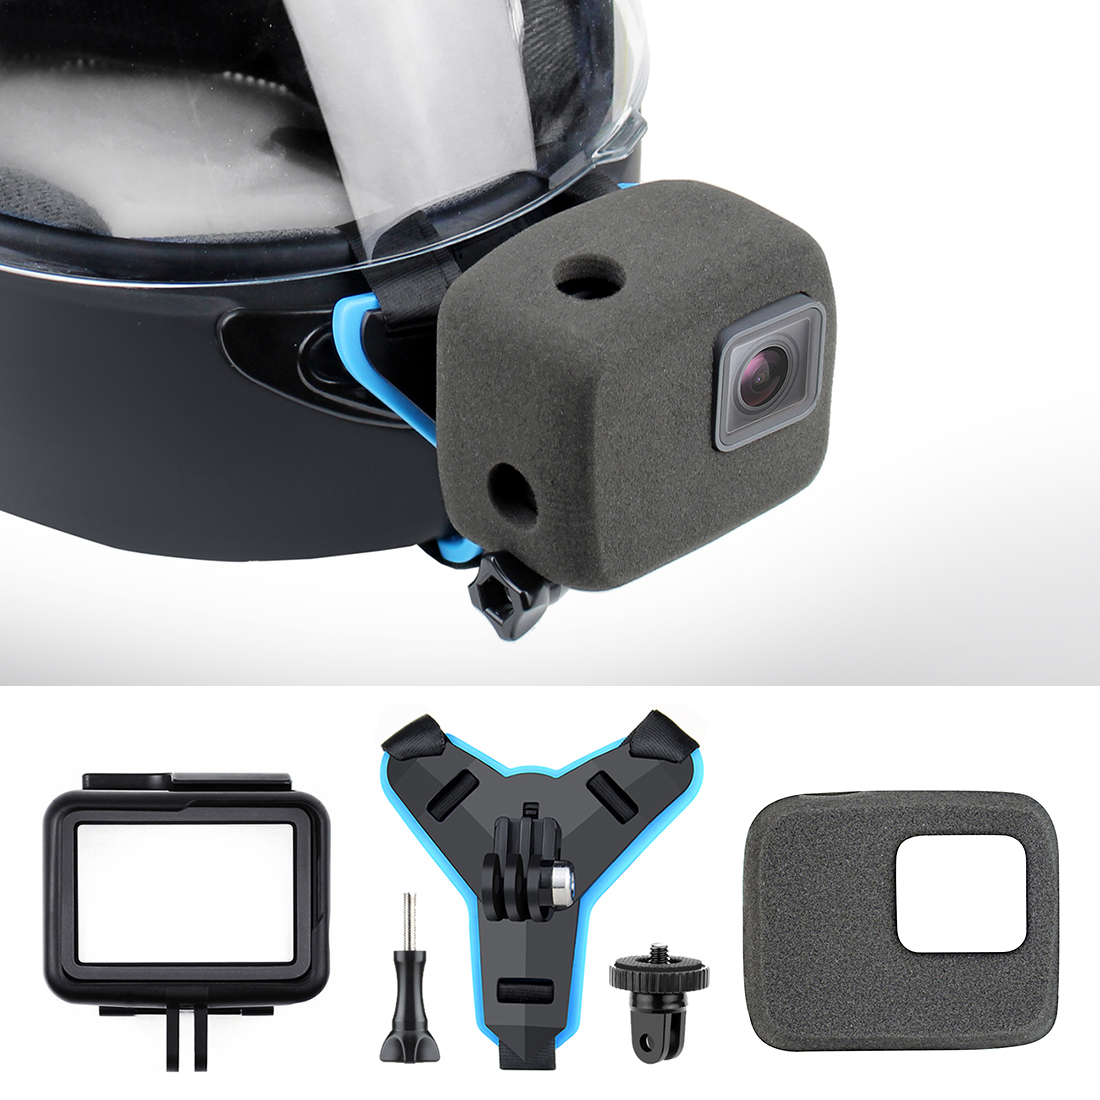 Helmet Front Mount Bundle Set for GoPro New Hero //HERO6//5//5 Session//Xiaoyi and Other Action Cameras Durable